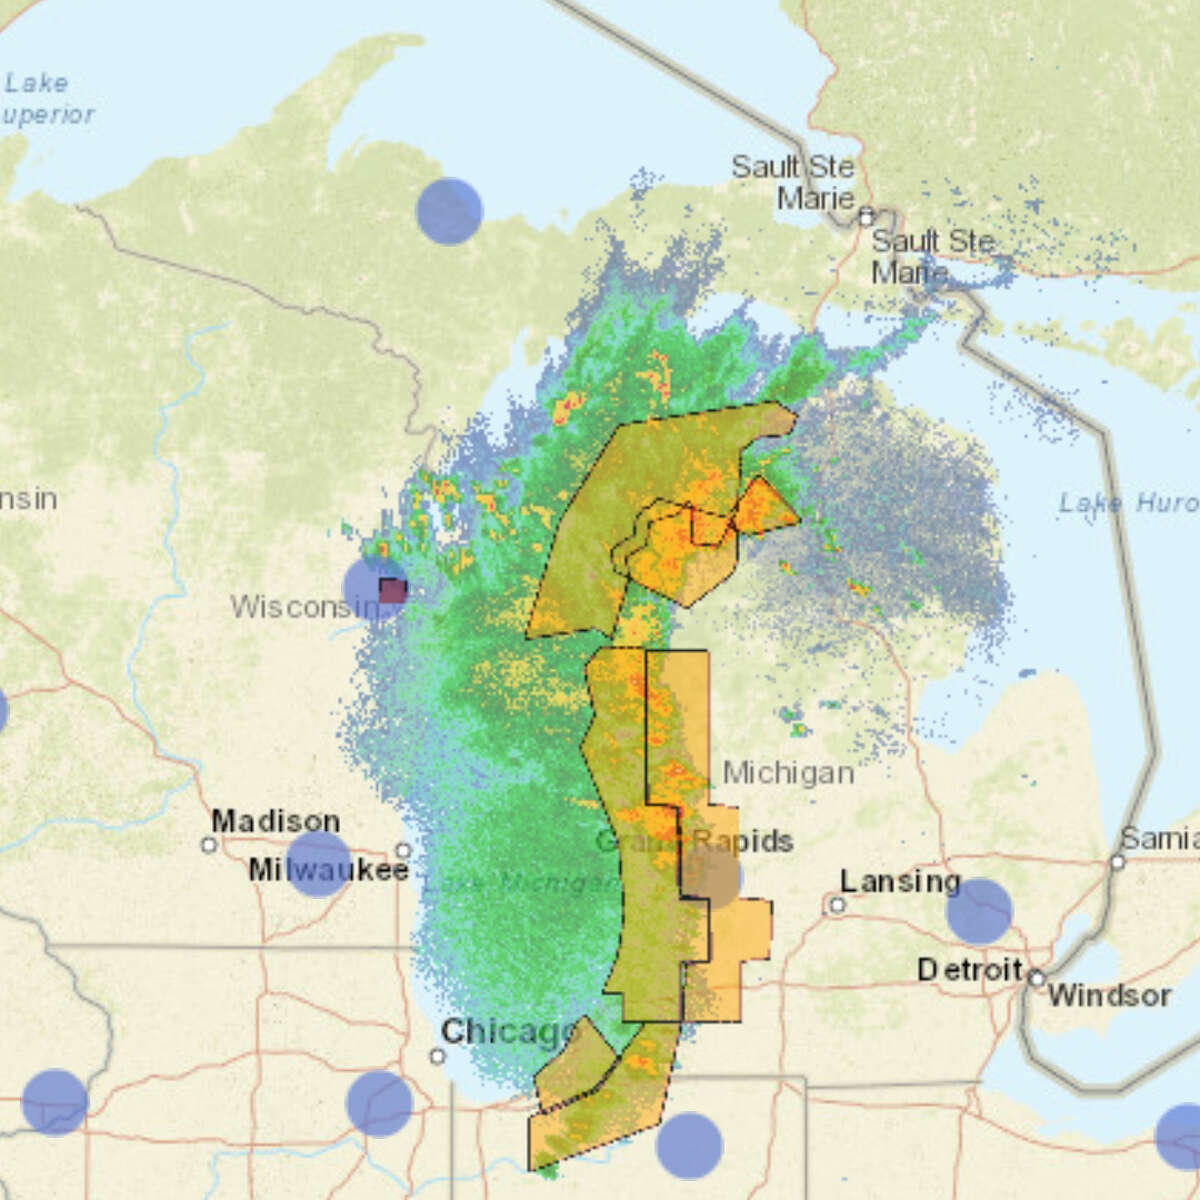 The Consumers Energy Outage Map shows power outage locations in Michigan on Wednesday morning, Aug. 11, following a storm that passed through the region late Tuesday and early Wednesday.